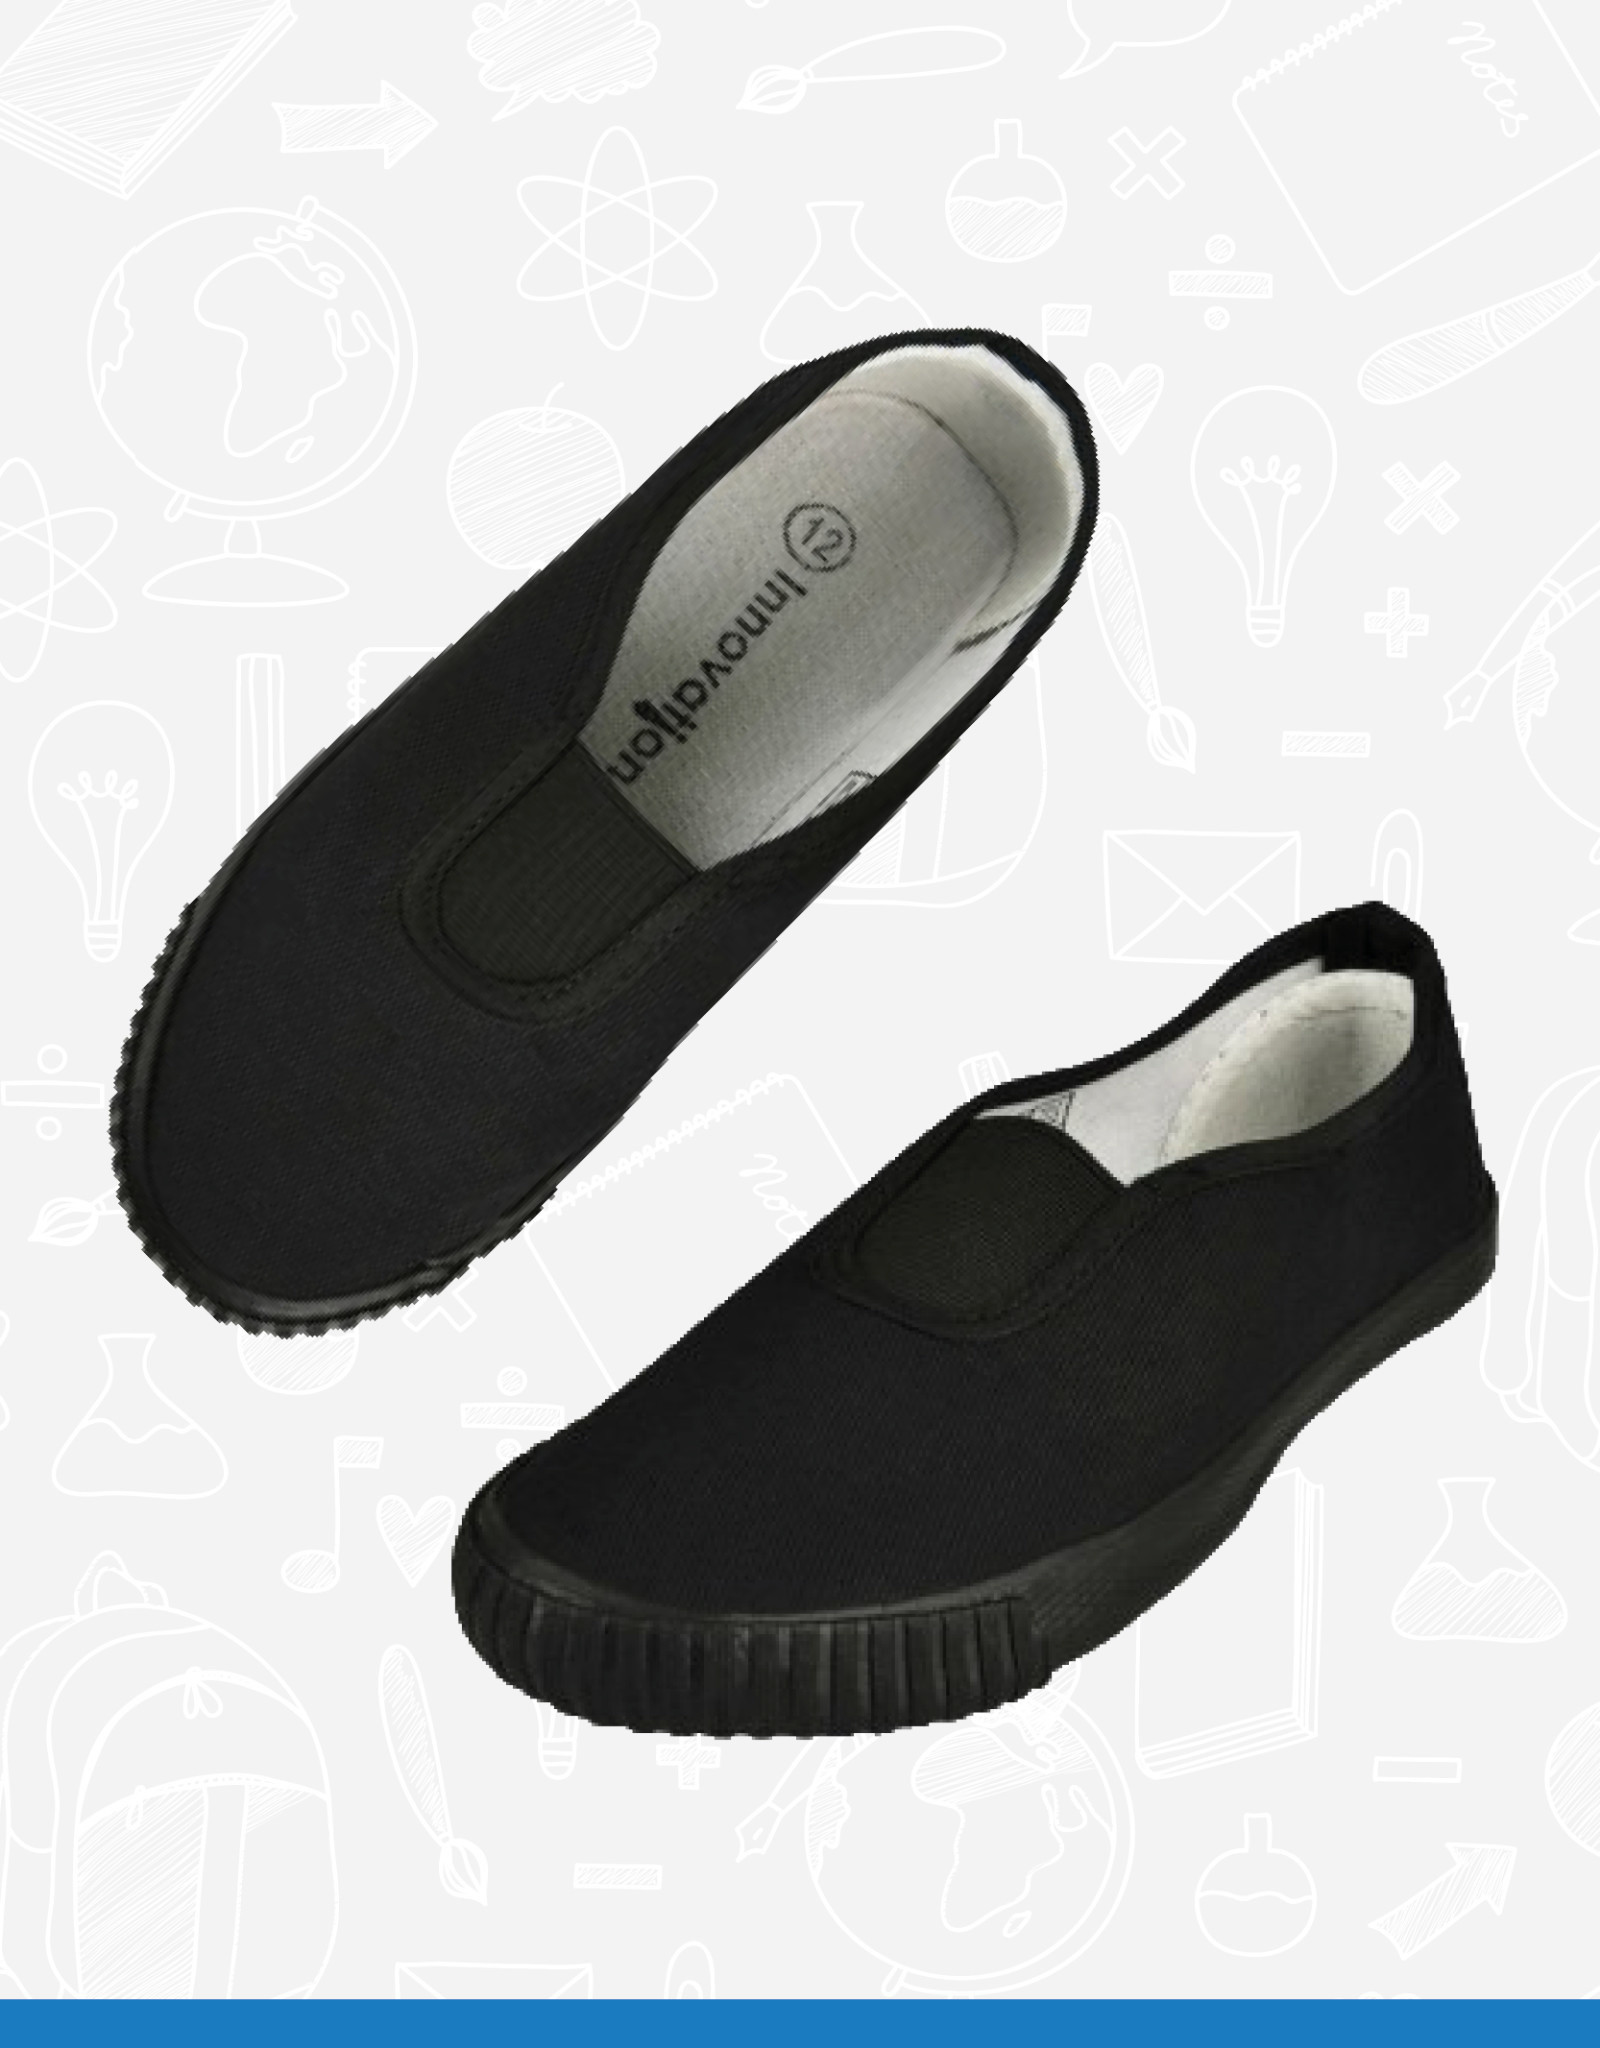 Innovation Gusset Plimsoles - PLG